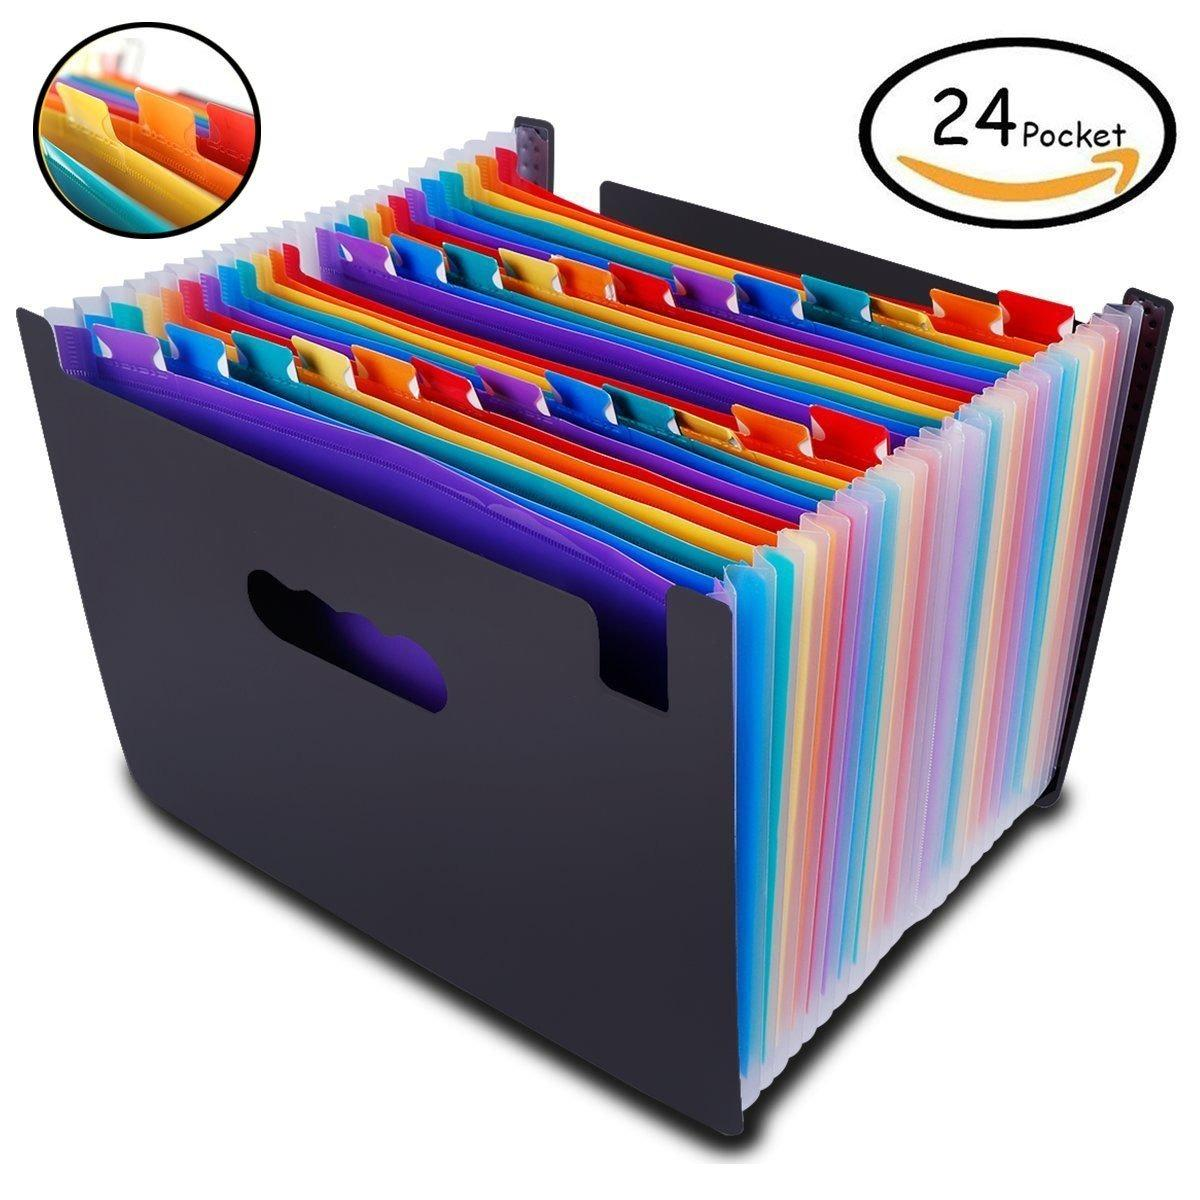 Deals For Expanding File Folder Large Plastic Rainbow Expandable File Organizer Self Standing Accordion A4 Document Folder Wallet Briefcase Business Filing Box 24 Pockets Intl